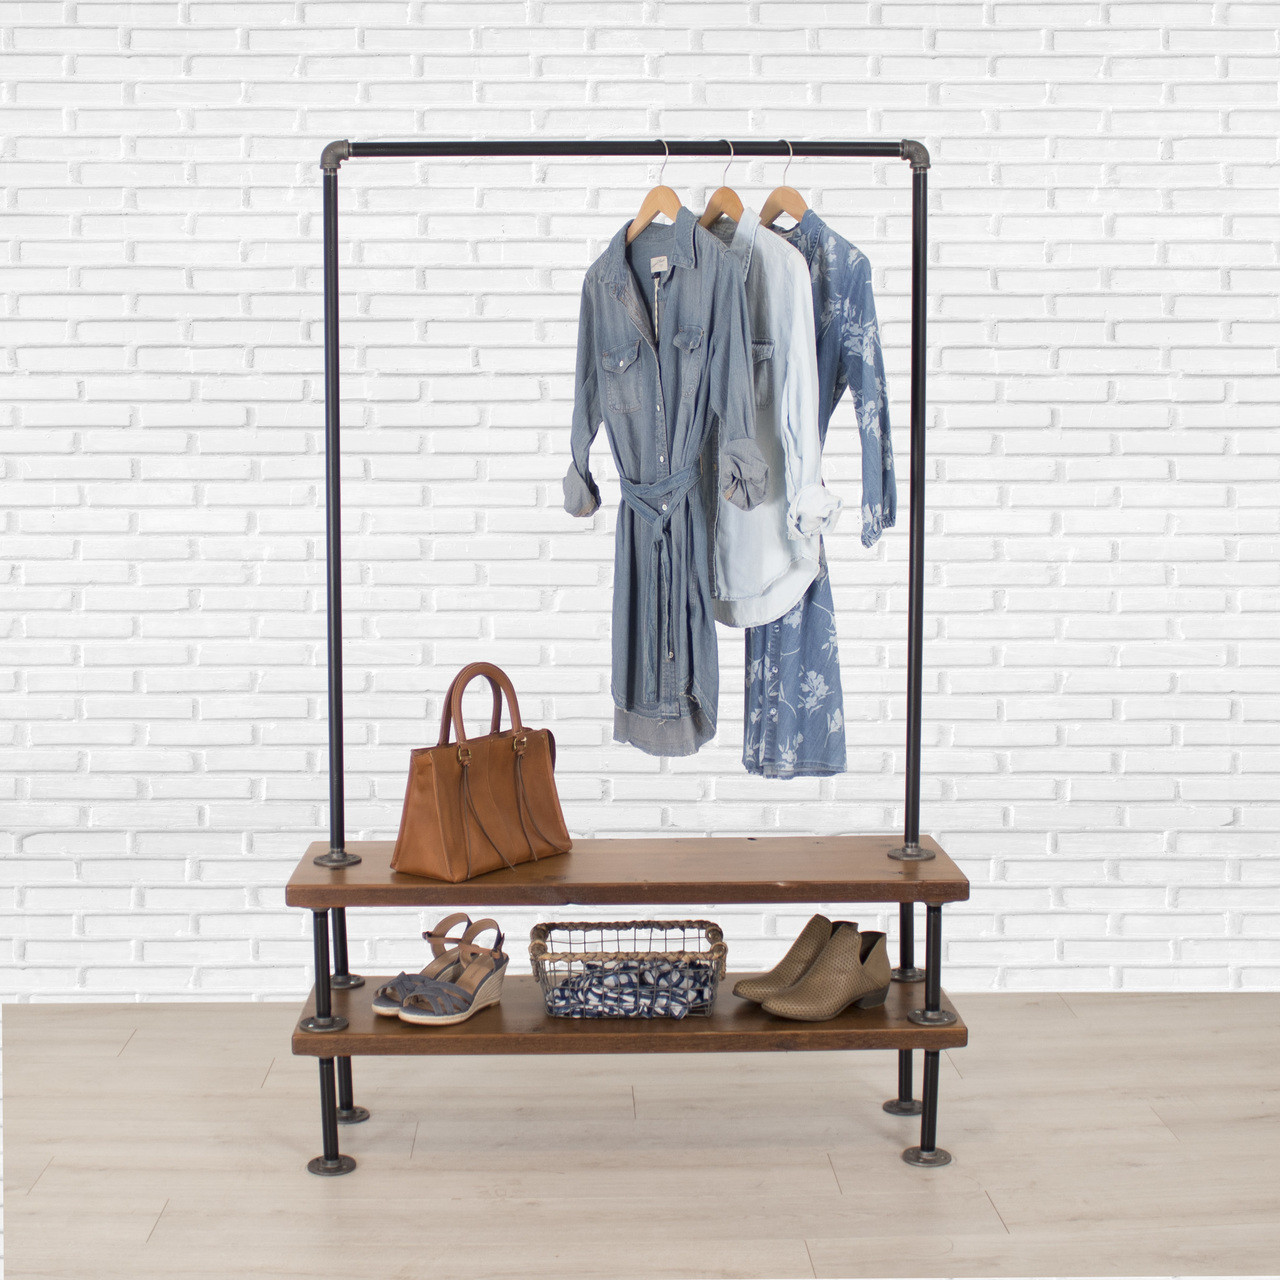 Industrial Clothing Rack Industrial Pipe Clothing Rack With Cedar Wood Shelves Double Shelf